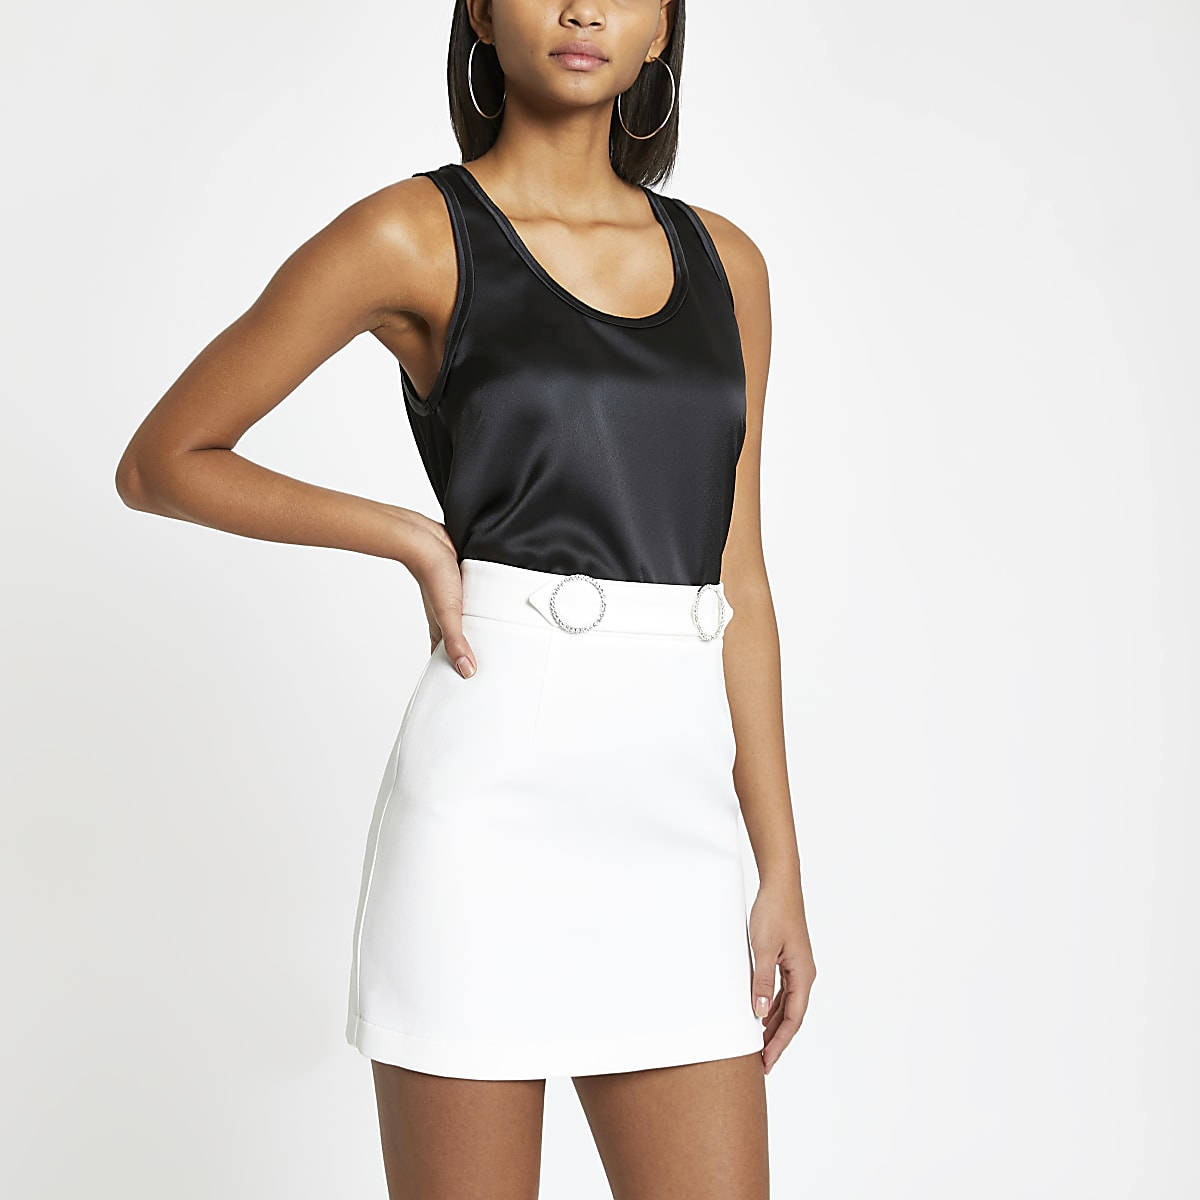 White Diamante Trim Mini Skirt Mini Skirts Skirts Women